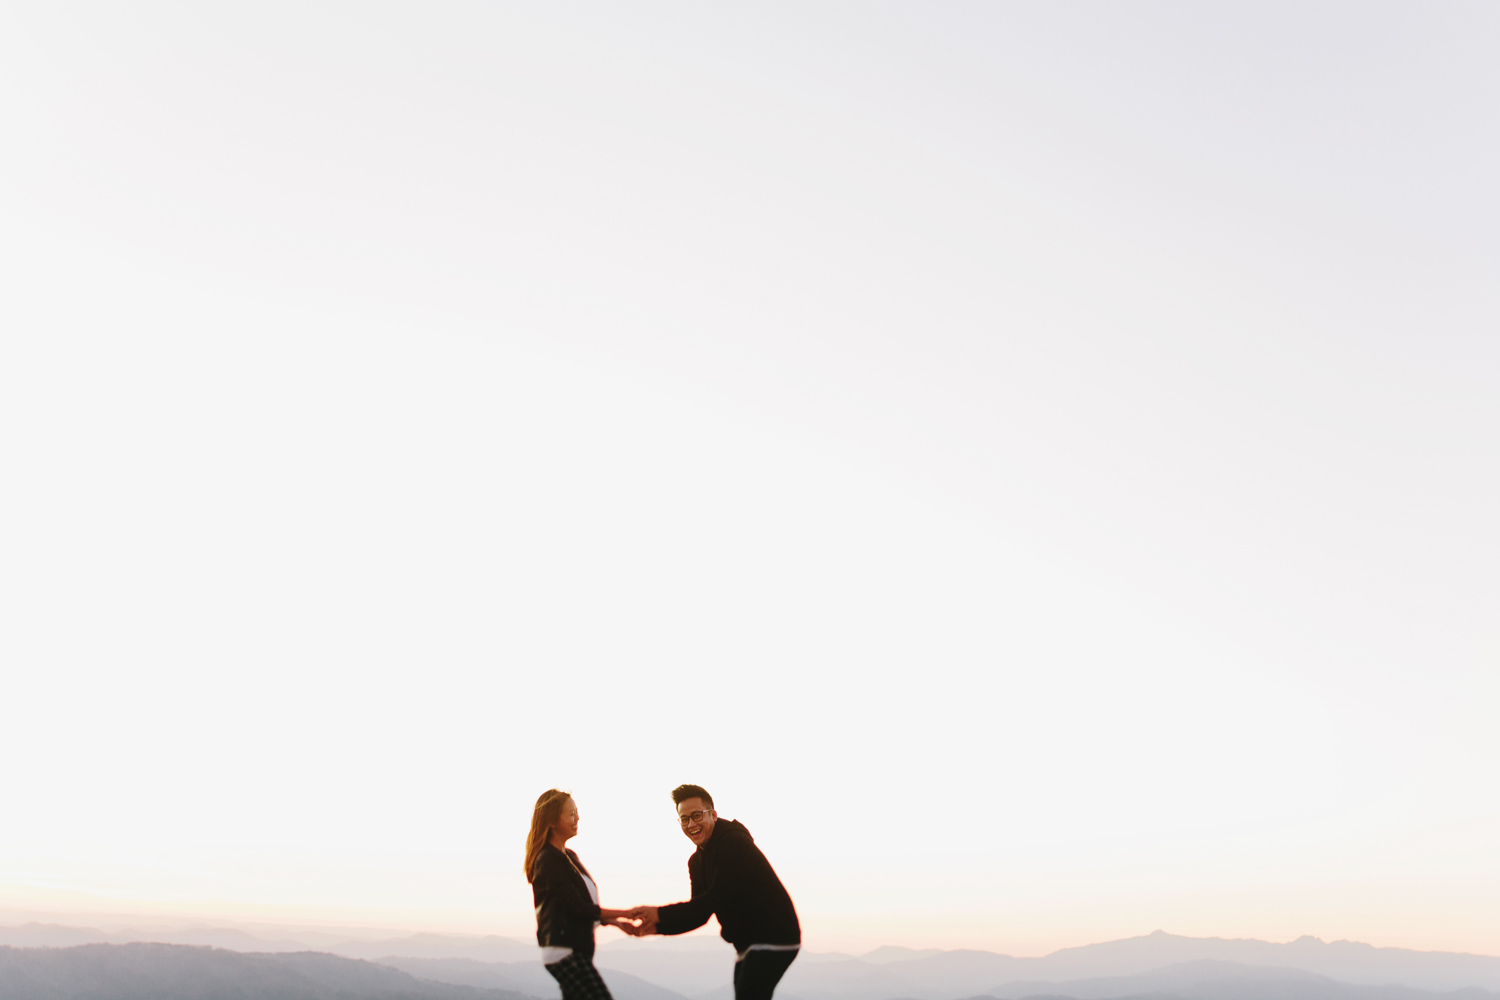 006-Ben_Lily_Mountain_Engagement_Session.jpg